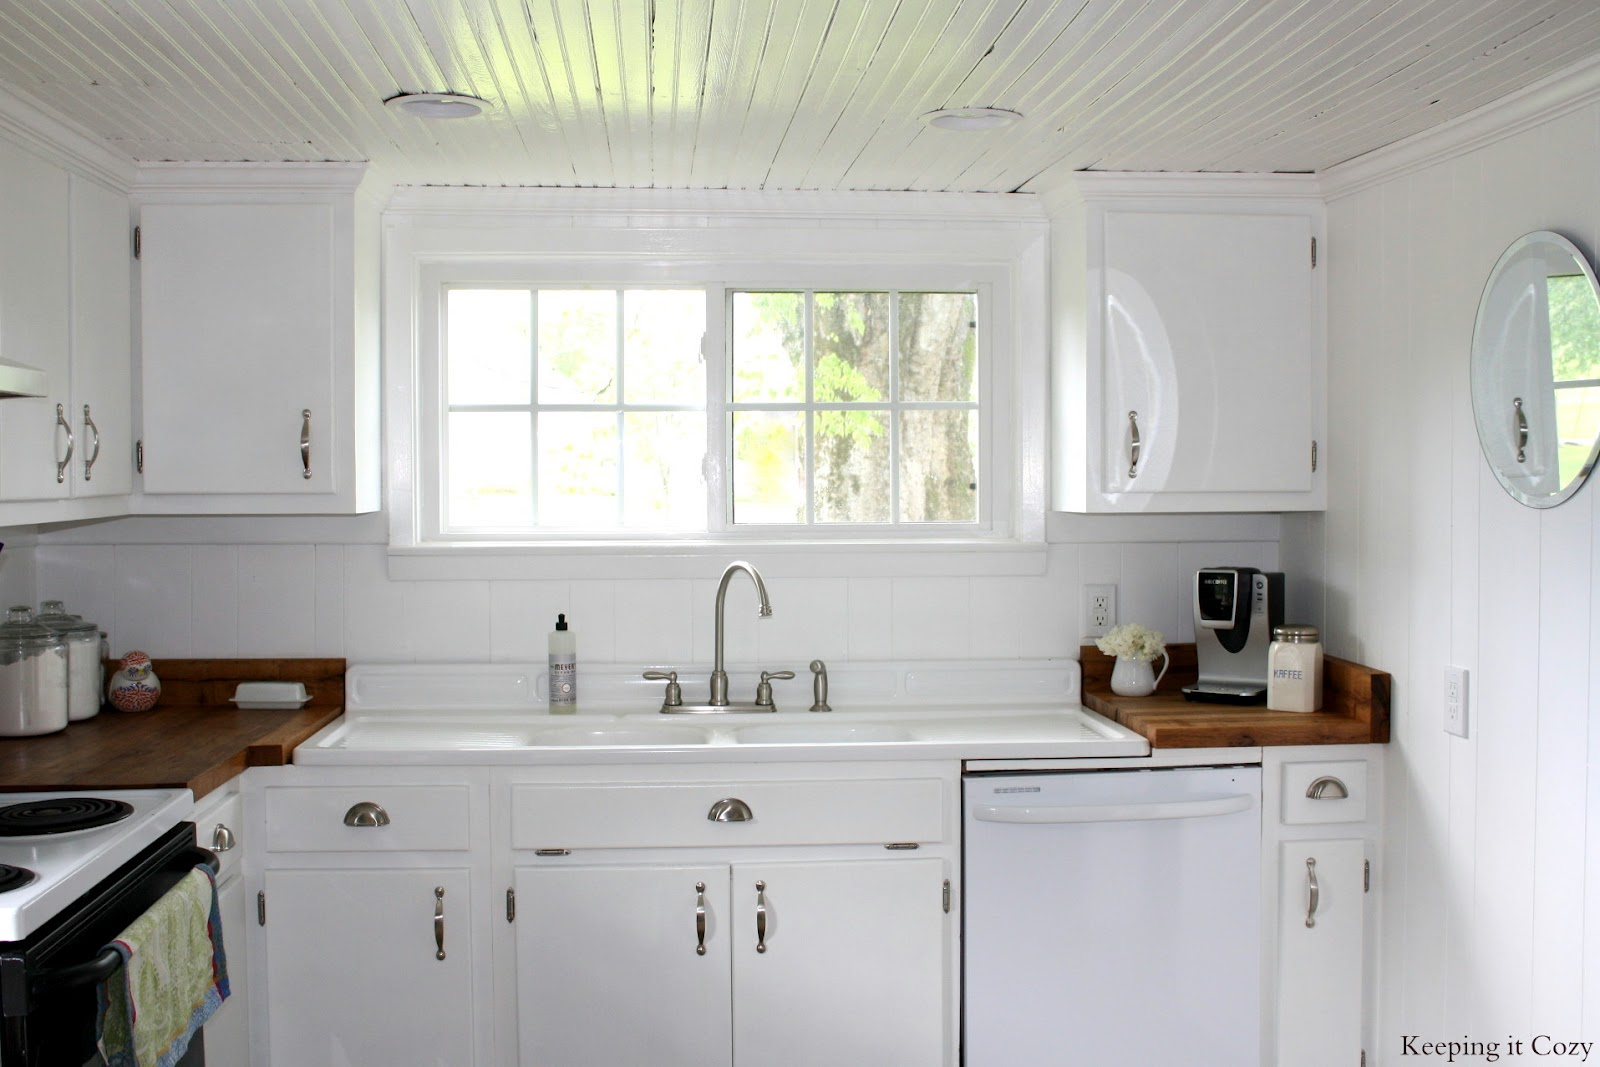 White Country Kitchen Cabinets remodelaholic | country kitchen with diy reclaimed wood countertop